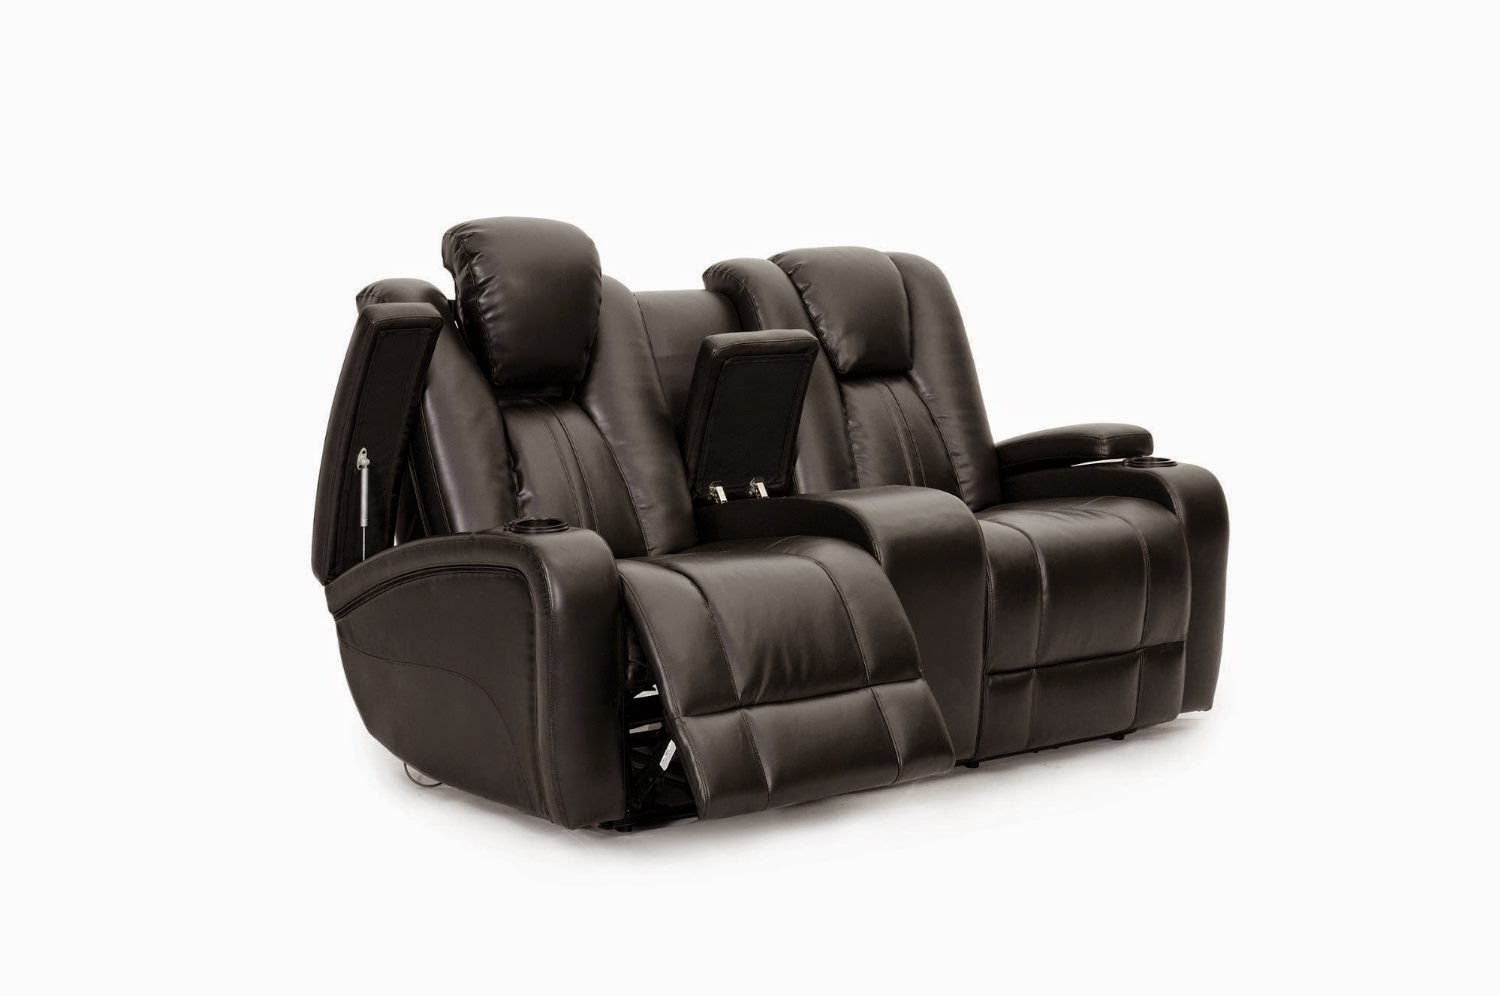 Top modern reclining sofa reviews reclining sofa with drop down table seatcraft transformer reclining loveseat with power and console geotapseo Choice Image